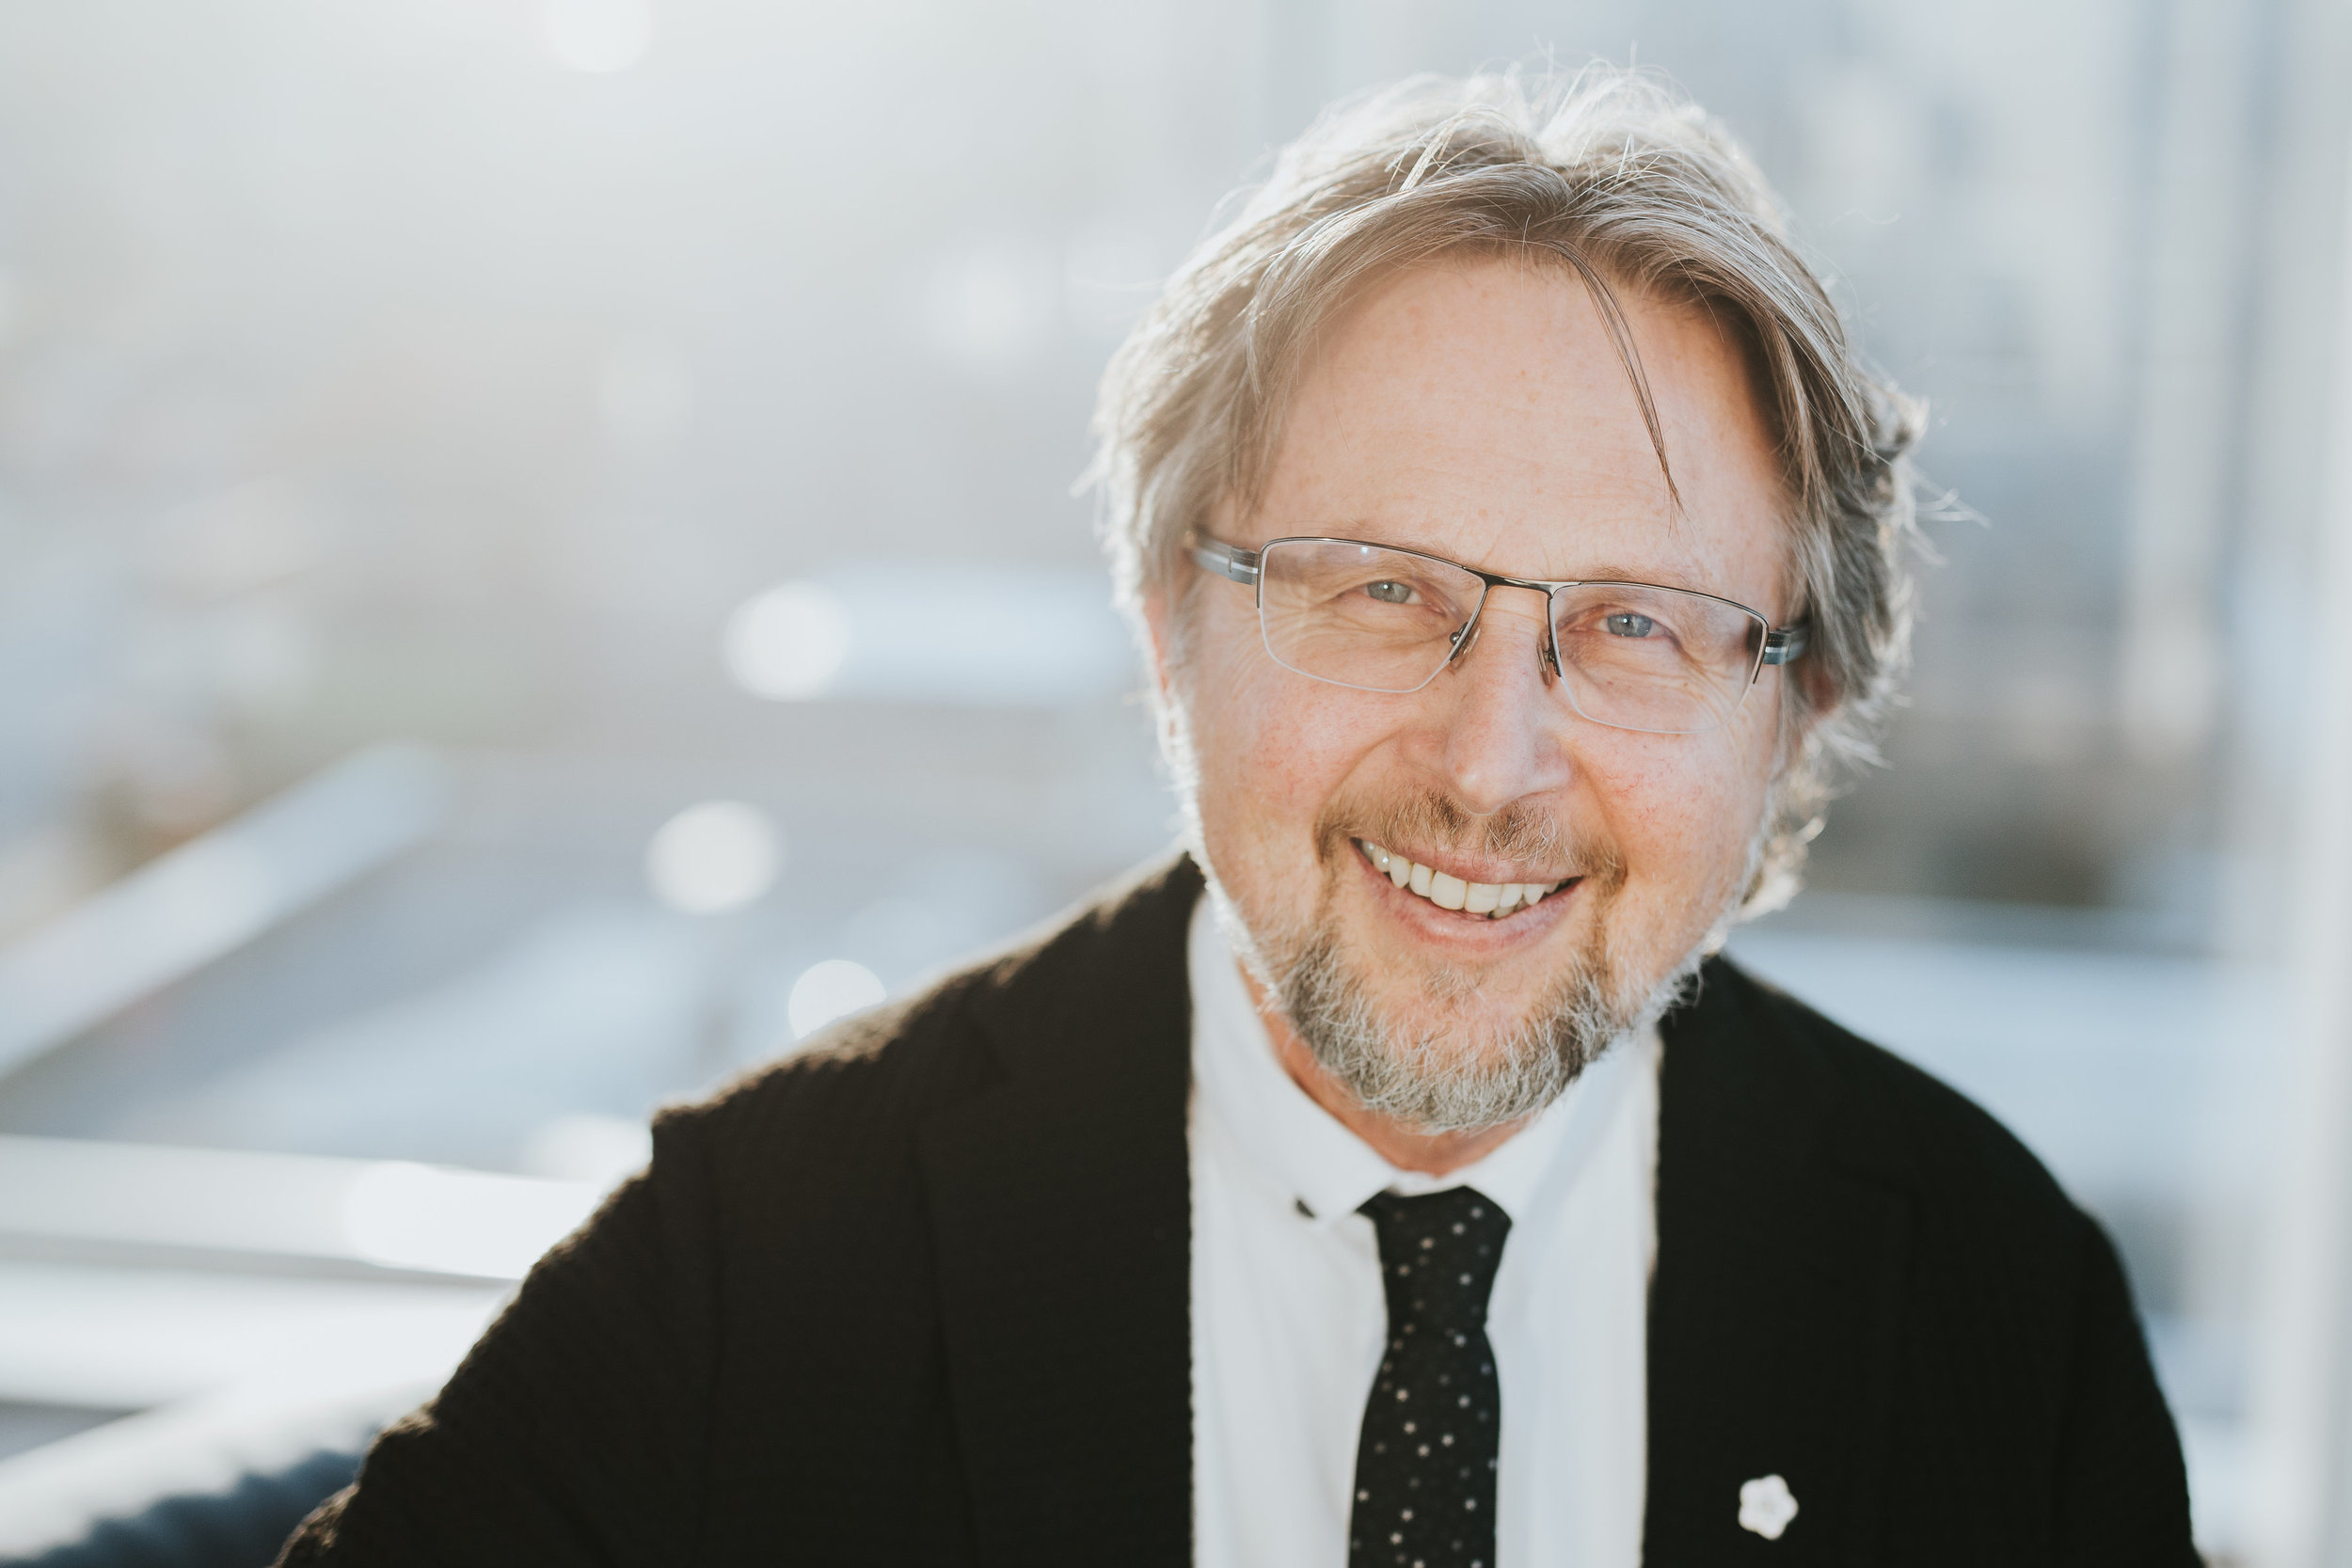 Dr. Stan Kutcher, Sun Life Financial Chair at Dalhousie University & IWK Health Centre